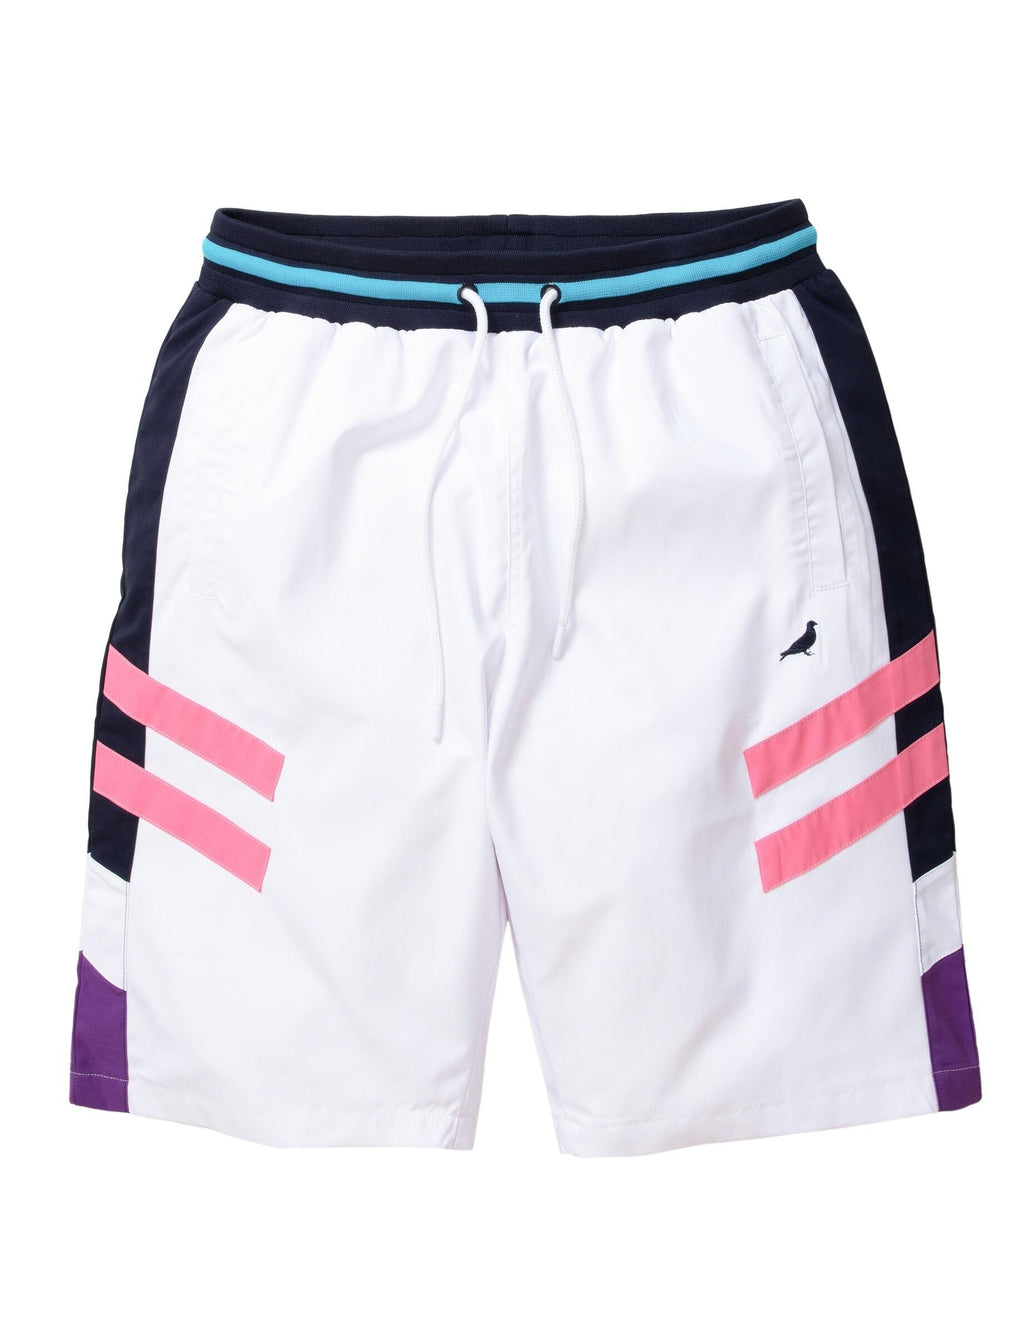 Athletic Nylon Short - Shorts | Staple Pigeon